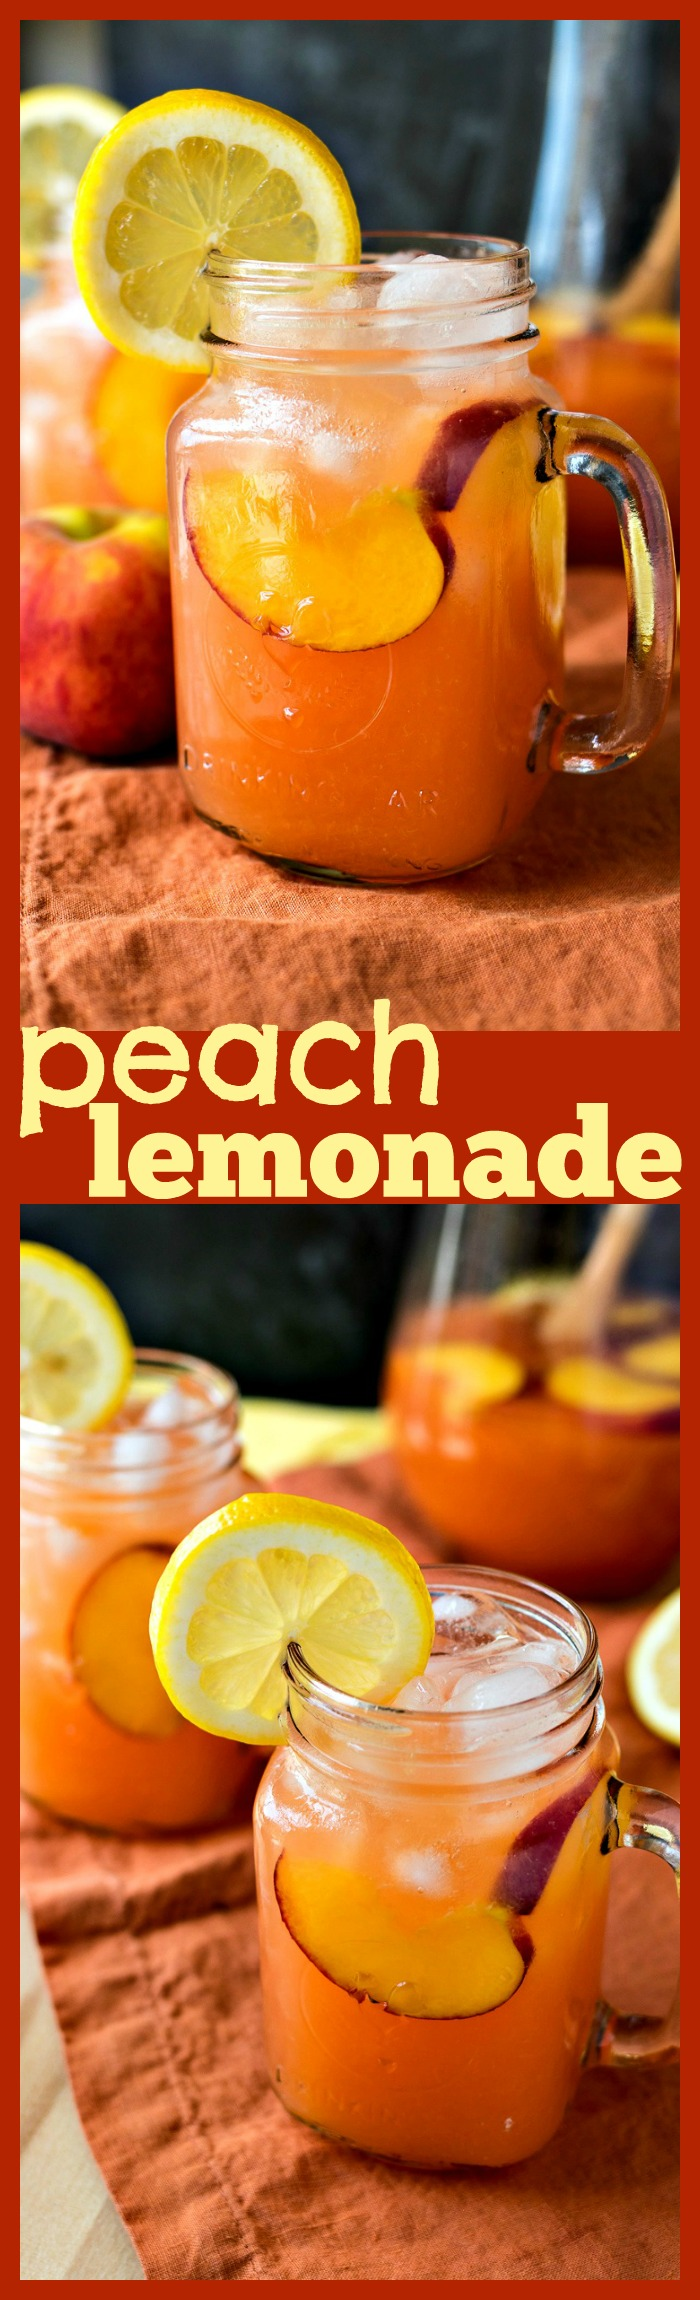 Peach Lemonade photo collage